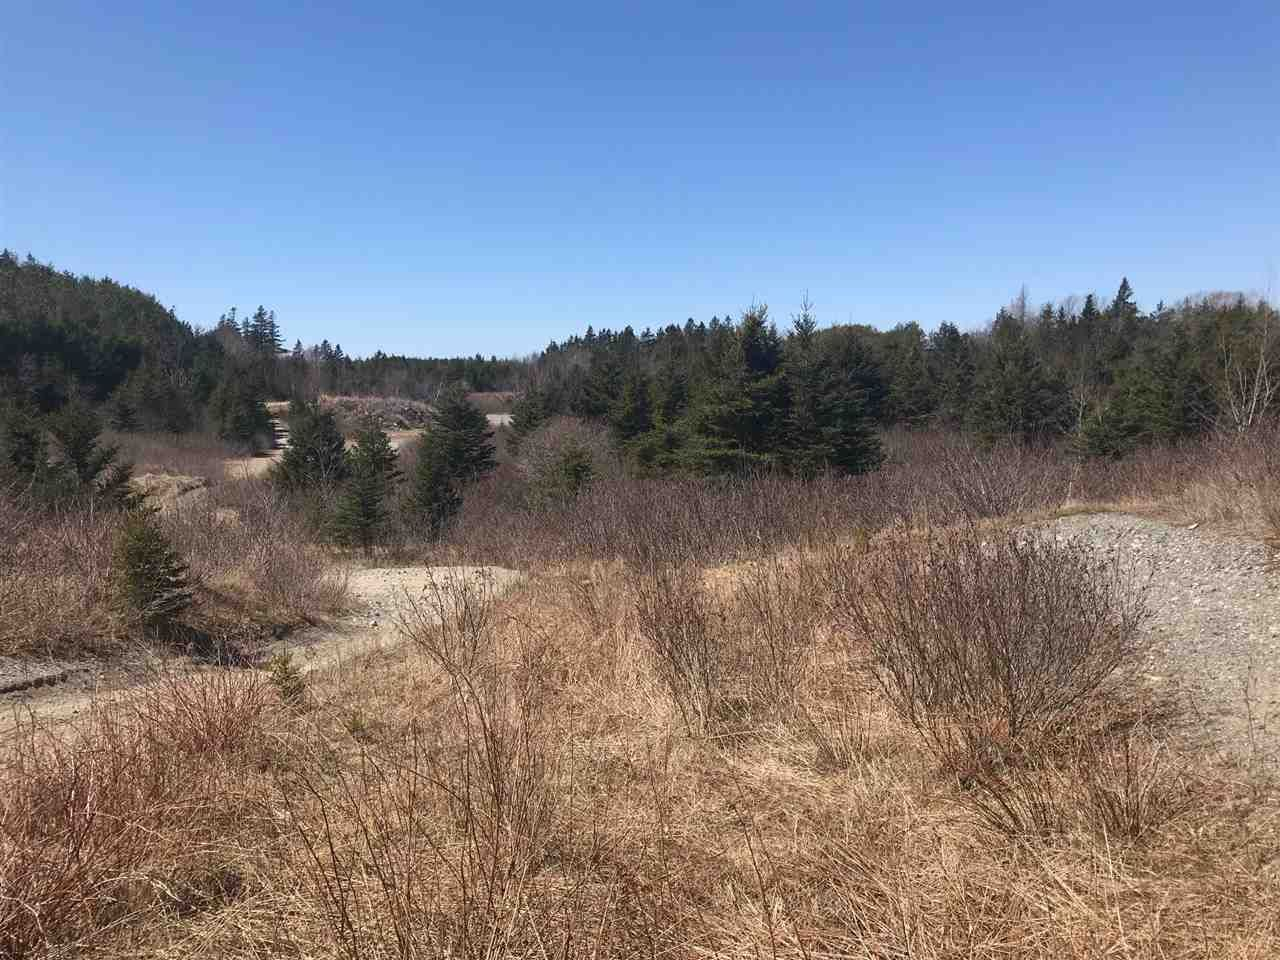 Photo 4: Photos: 11574 Highway 7 in Lake Charlotte: 35-Halifax County East Vacant Land for sale (Halifax-Dartmouth)  : MLS®# 201927372